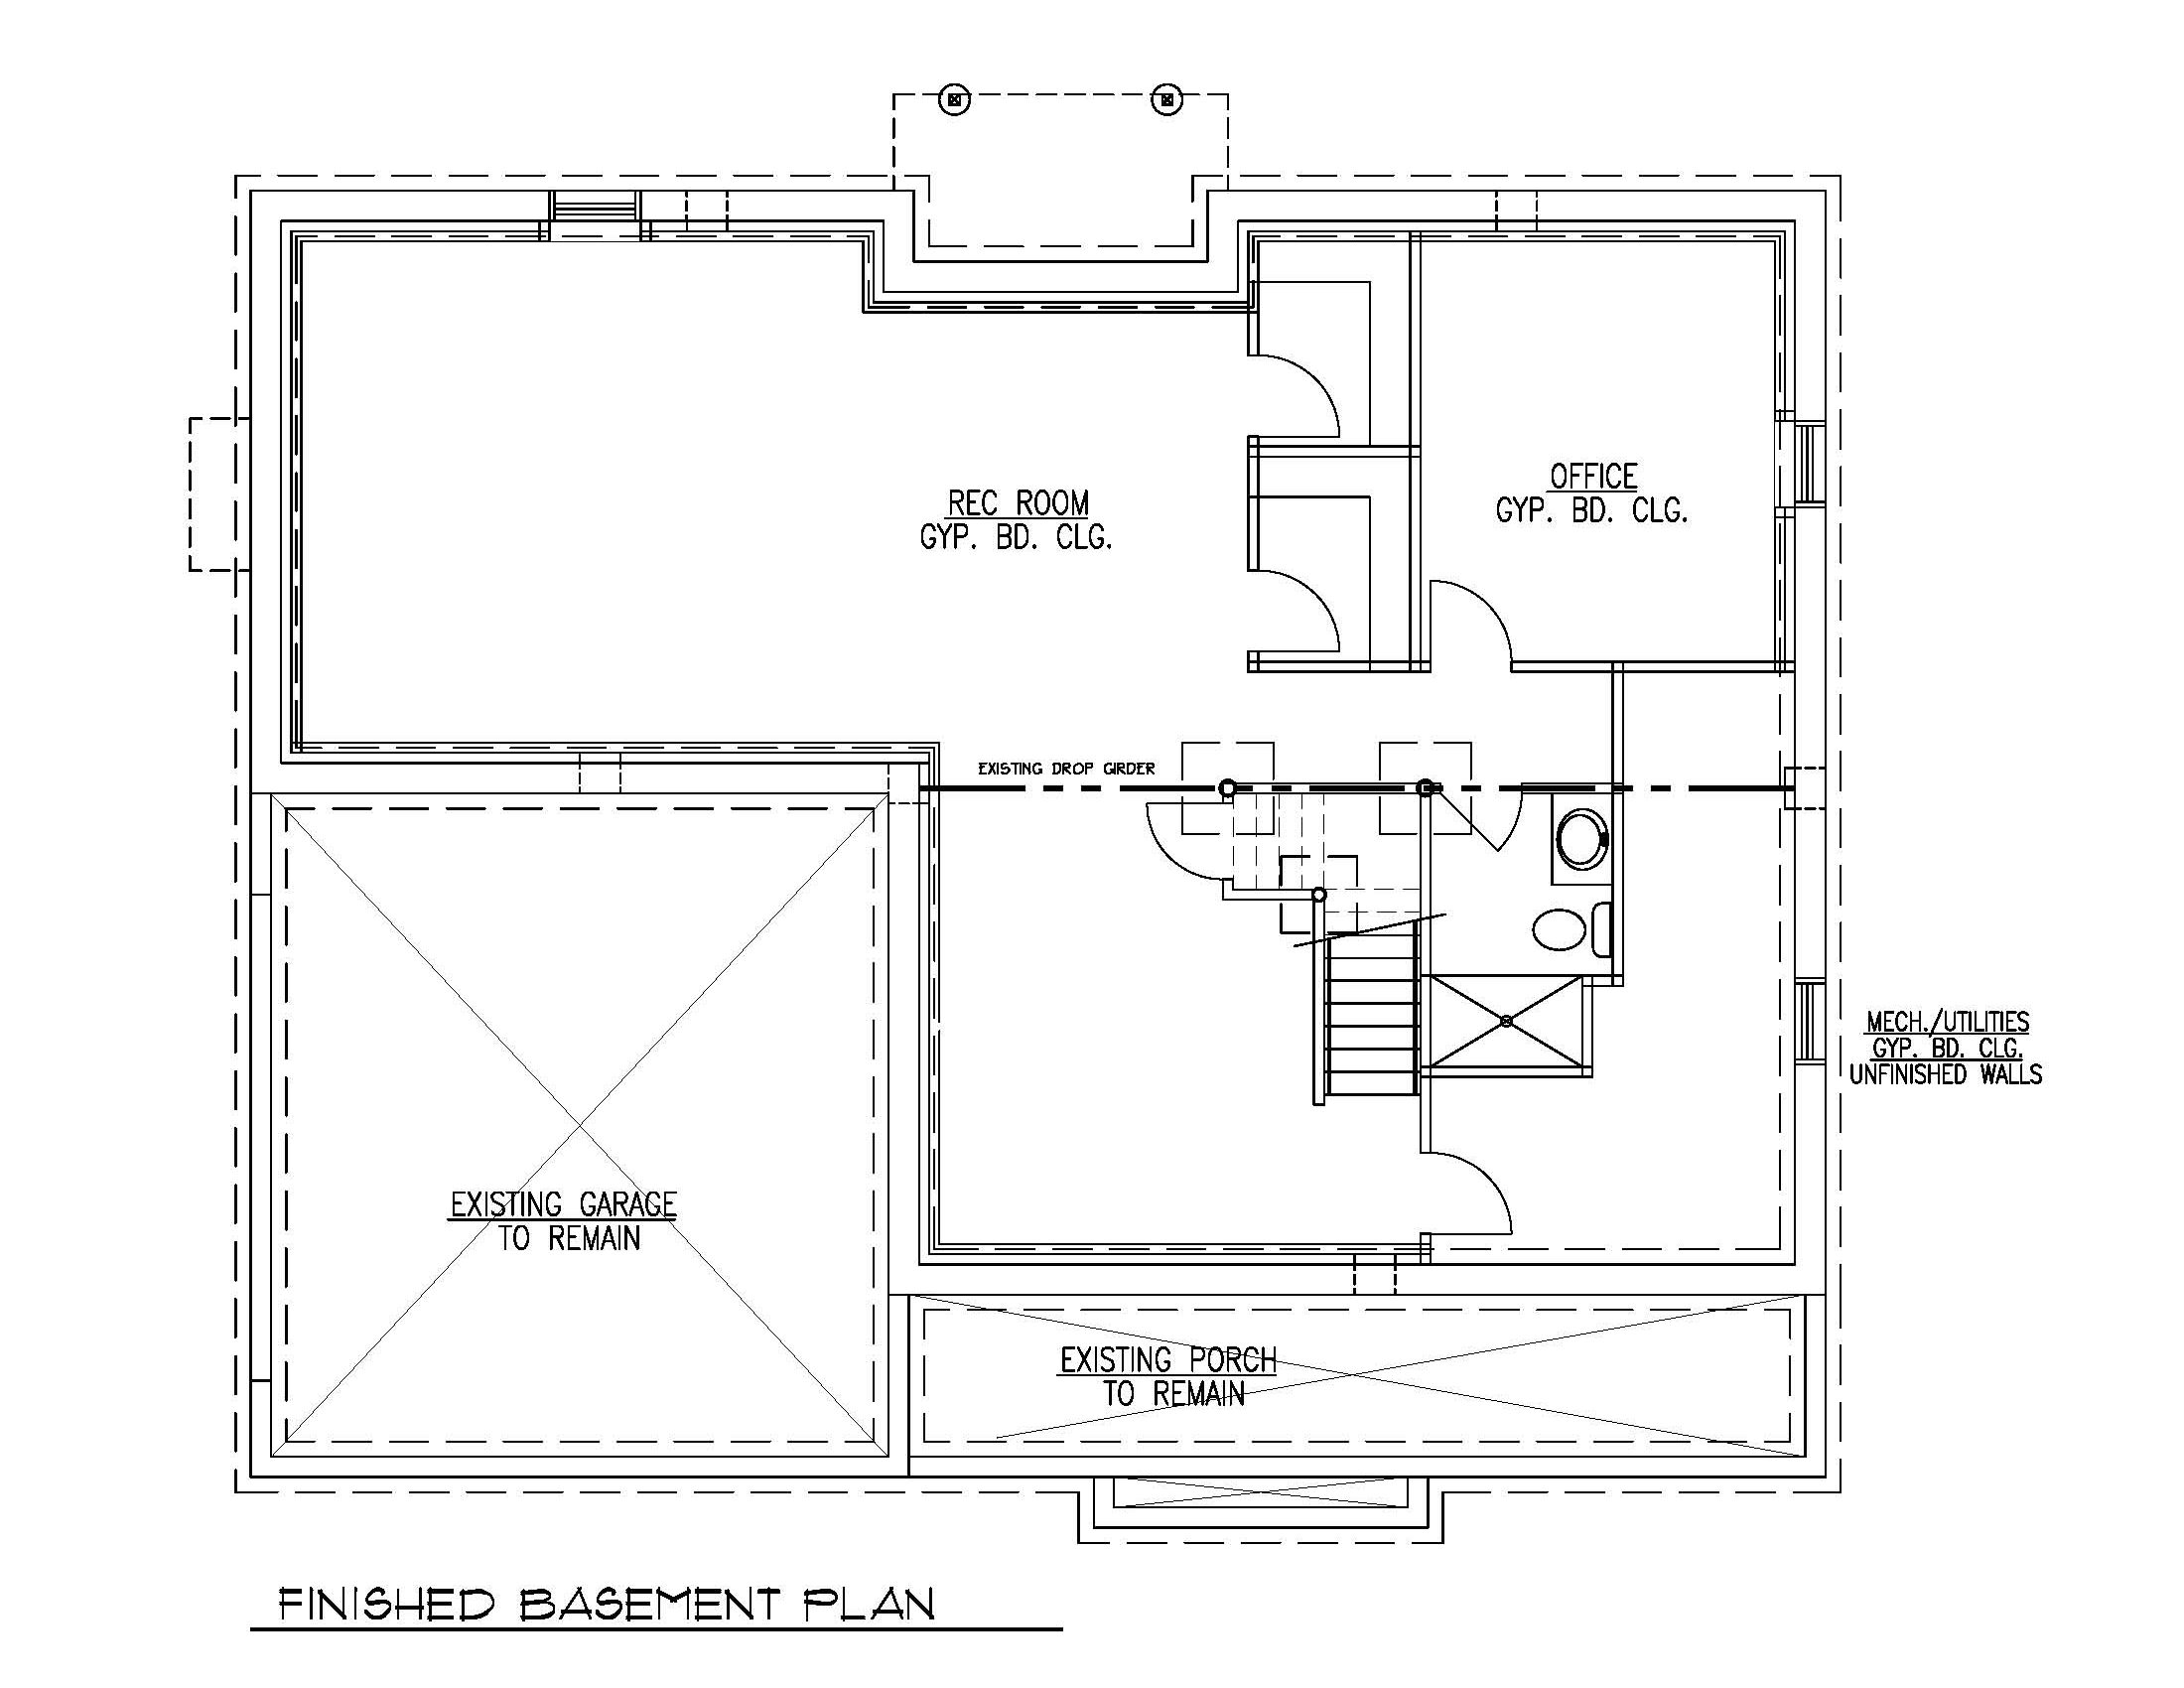 Finished Basement Floor Plan